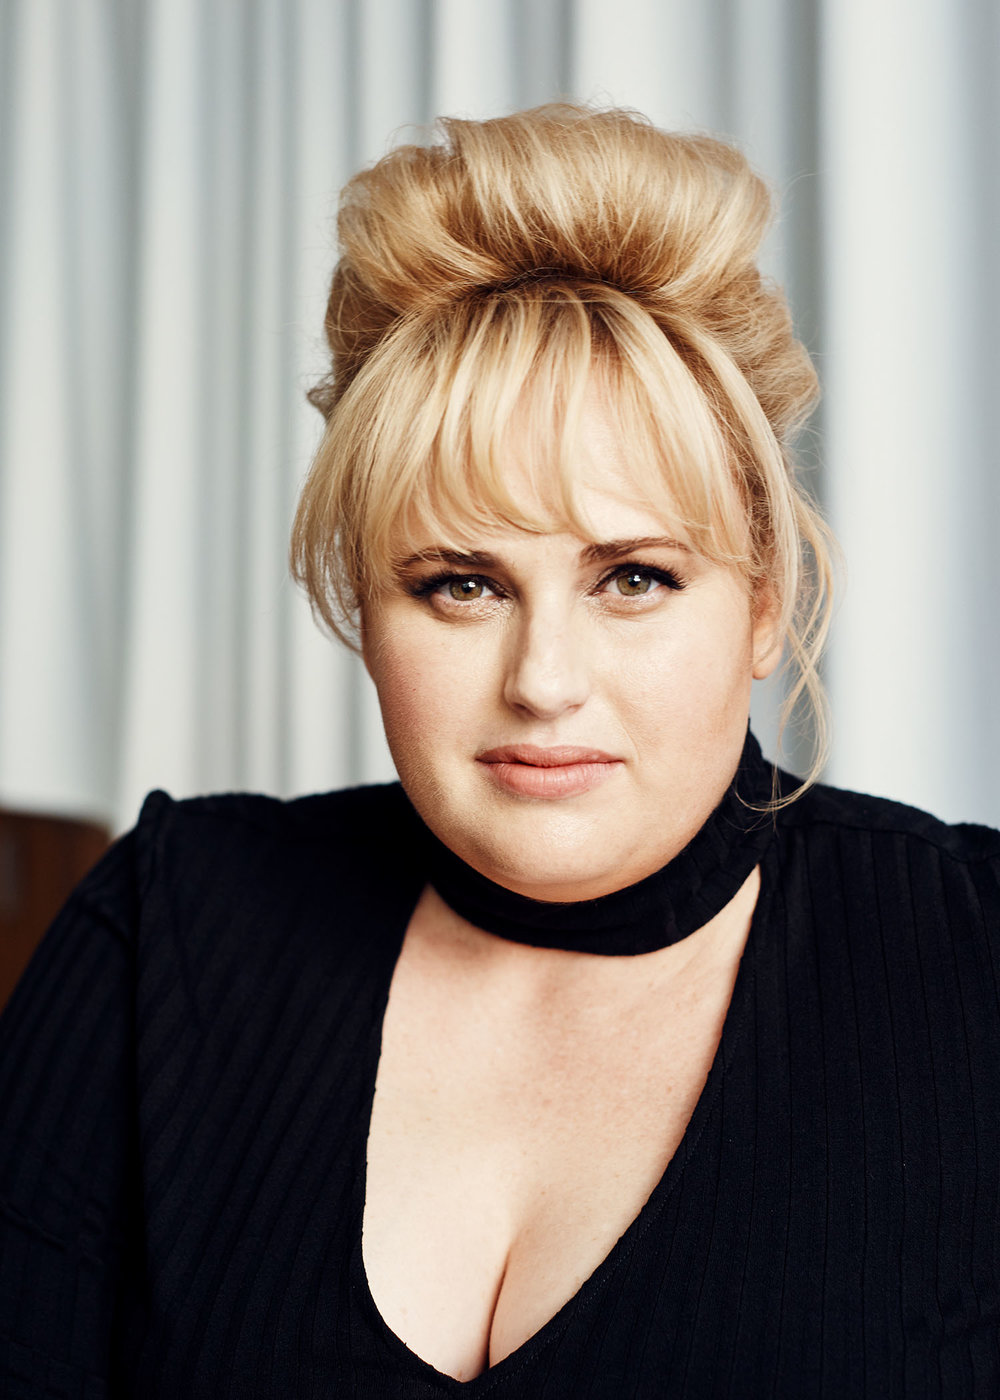 Rebel-Wilson-by-Weston-Wells.jpg